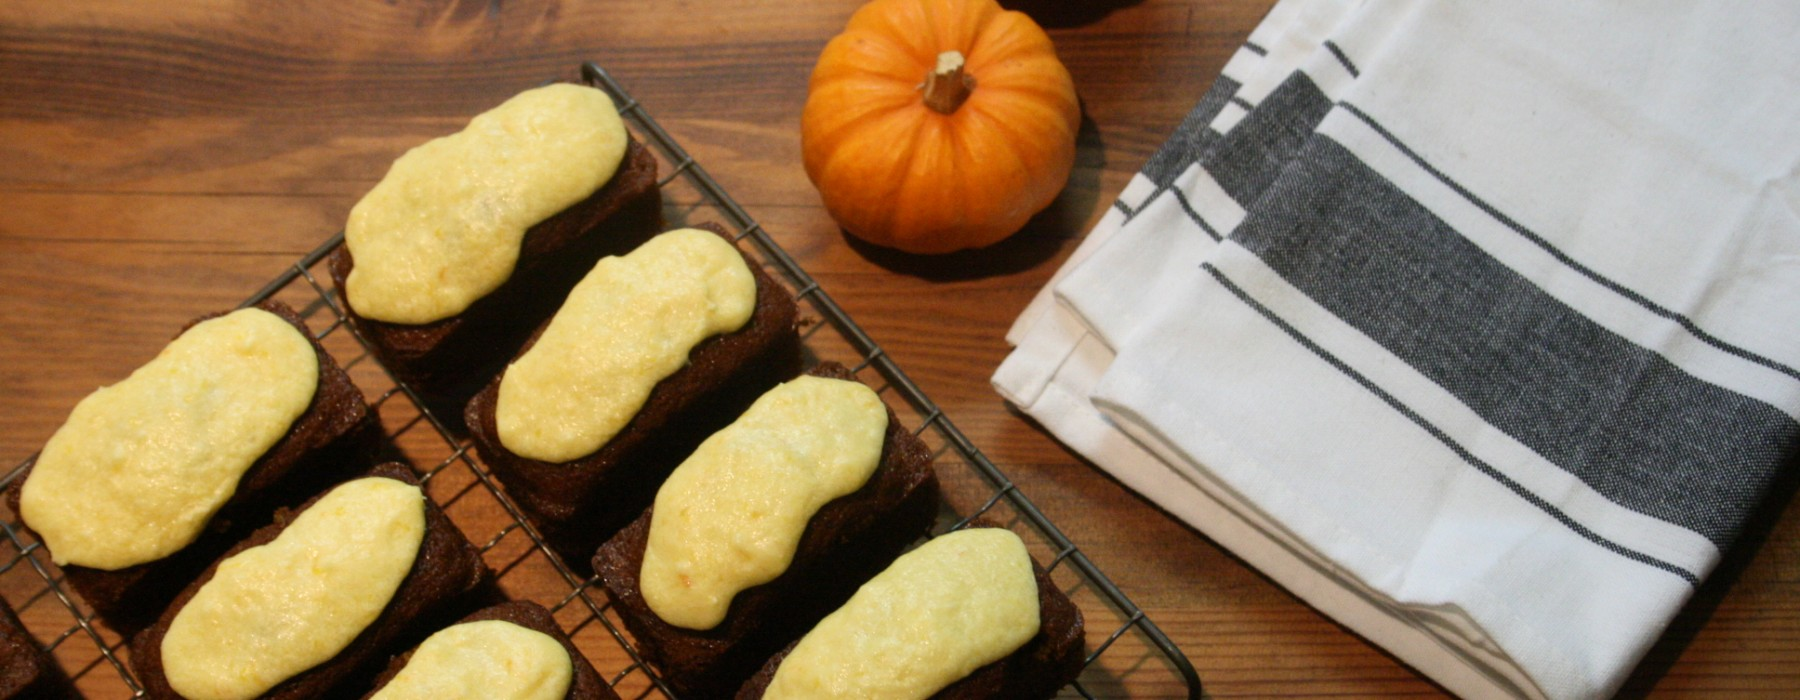 Homegrown and Homemade: Pumpkin Cakes